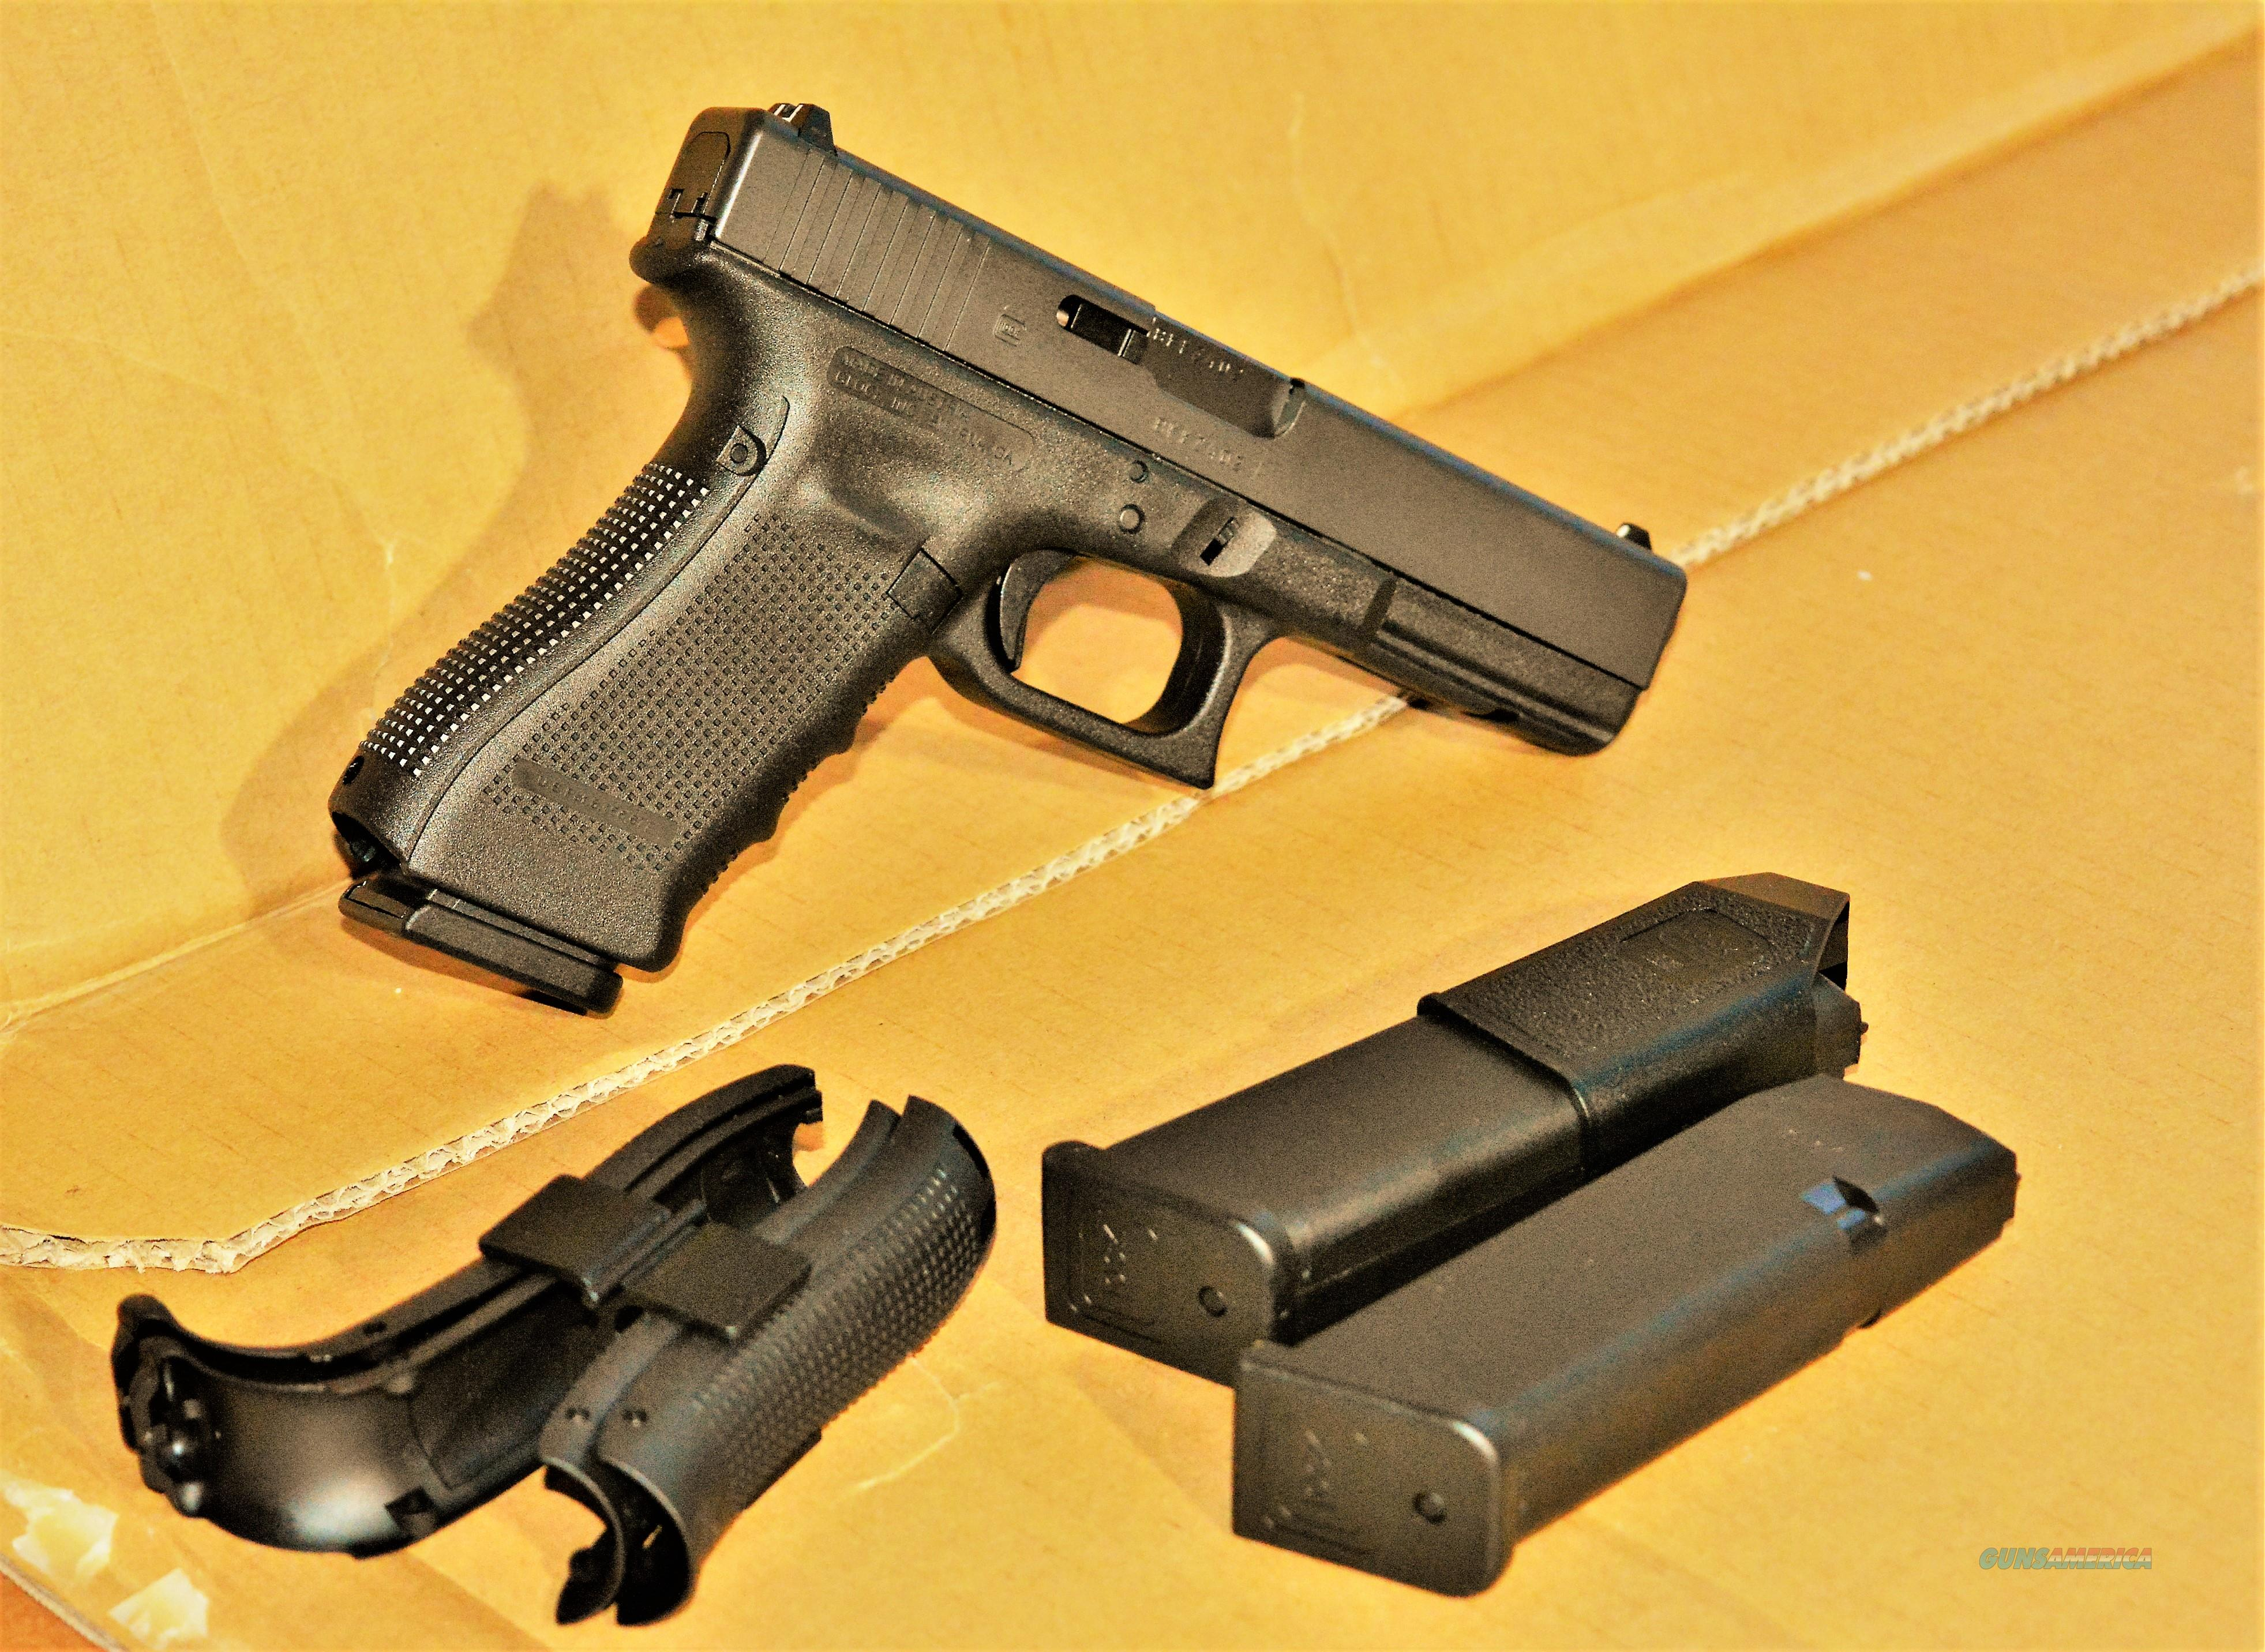 EASY PAY $49 DOWN LAYAWAY 12 MONTHLY PAYMENTS  GLOCK 22 firepower Gen4 .40 S&W cartridge GEN 4  GLK Polymer Frame Police G22 4.48 Barrel 15 Rounds Black  G-22  military .40 Smith & Wesson competition Fixed  Sights  PG2250203  Guns > Pistols > Glock Pistols > 22